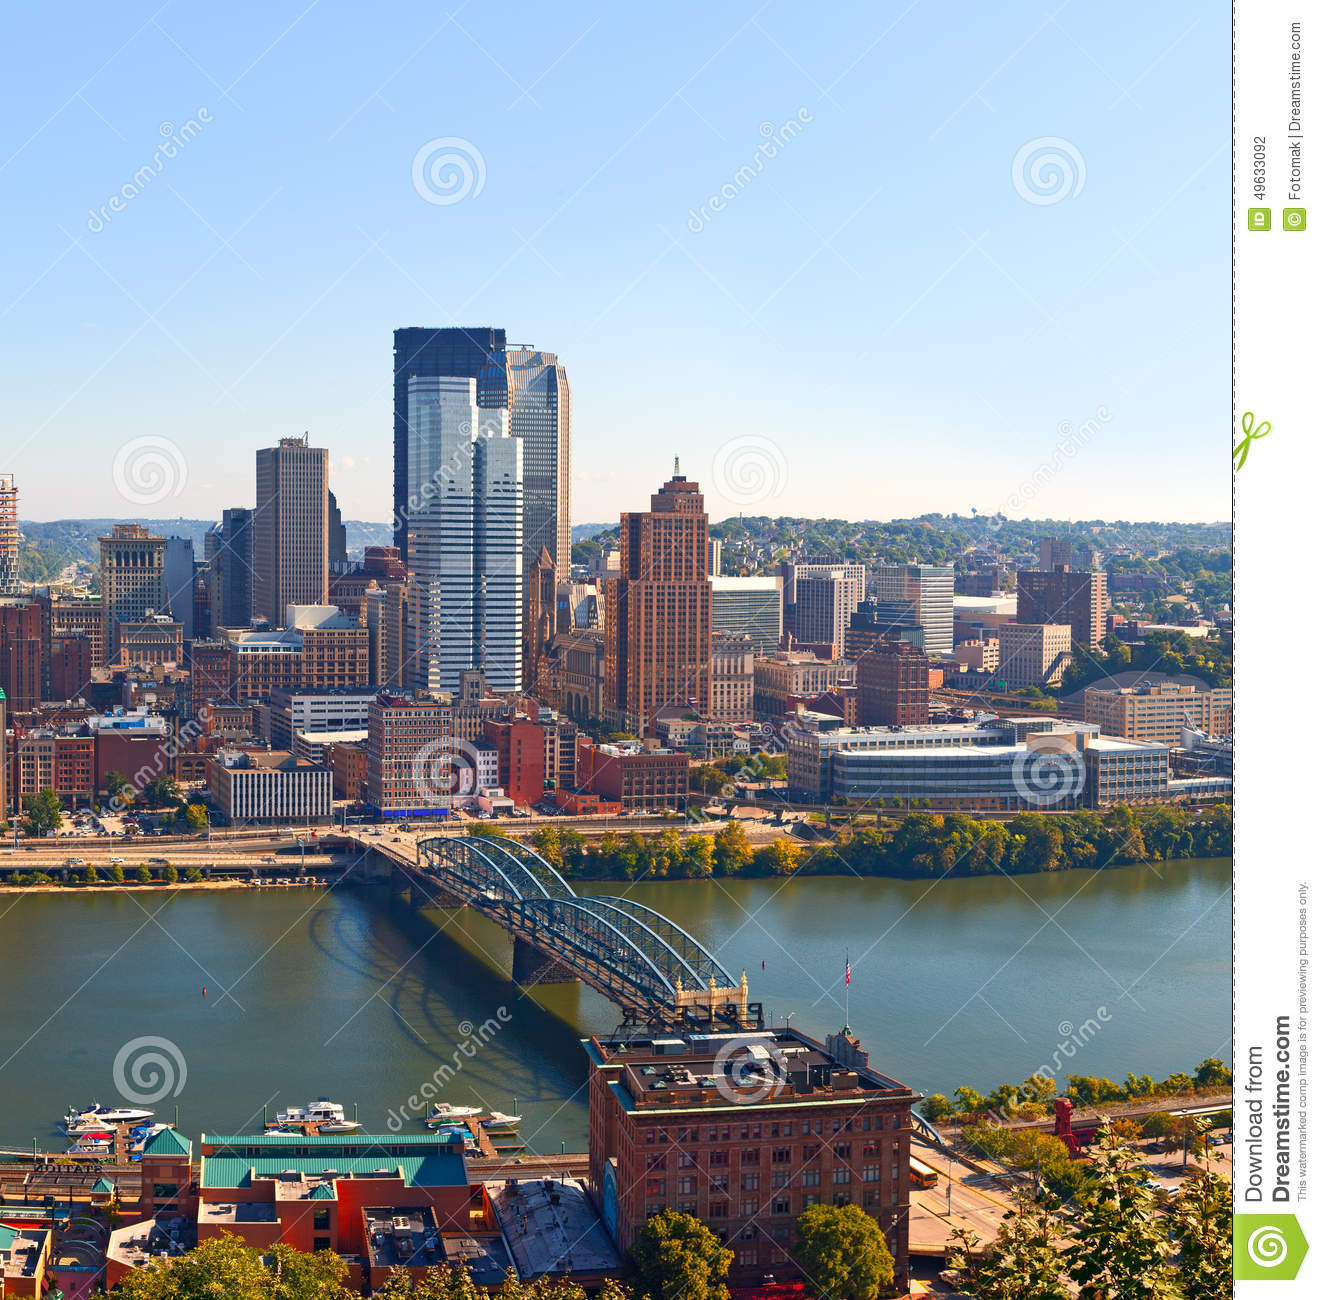 pittsburgh pennsylvania usa skyline panorama of business buildings stock photo image 49633092. Black Bedroom Furniture Sets. Home Design Ideas